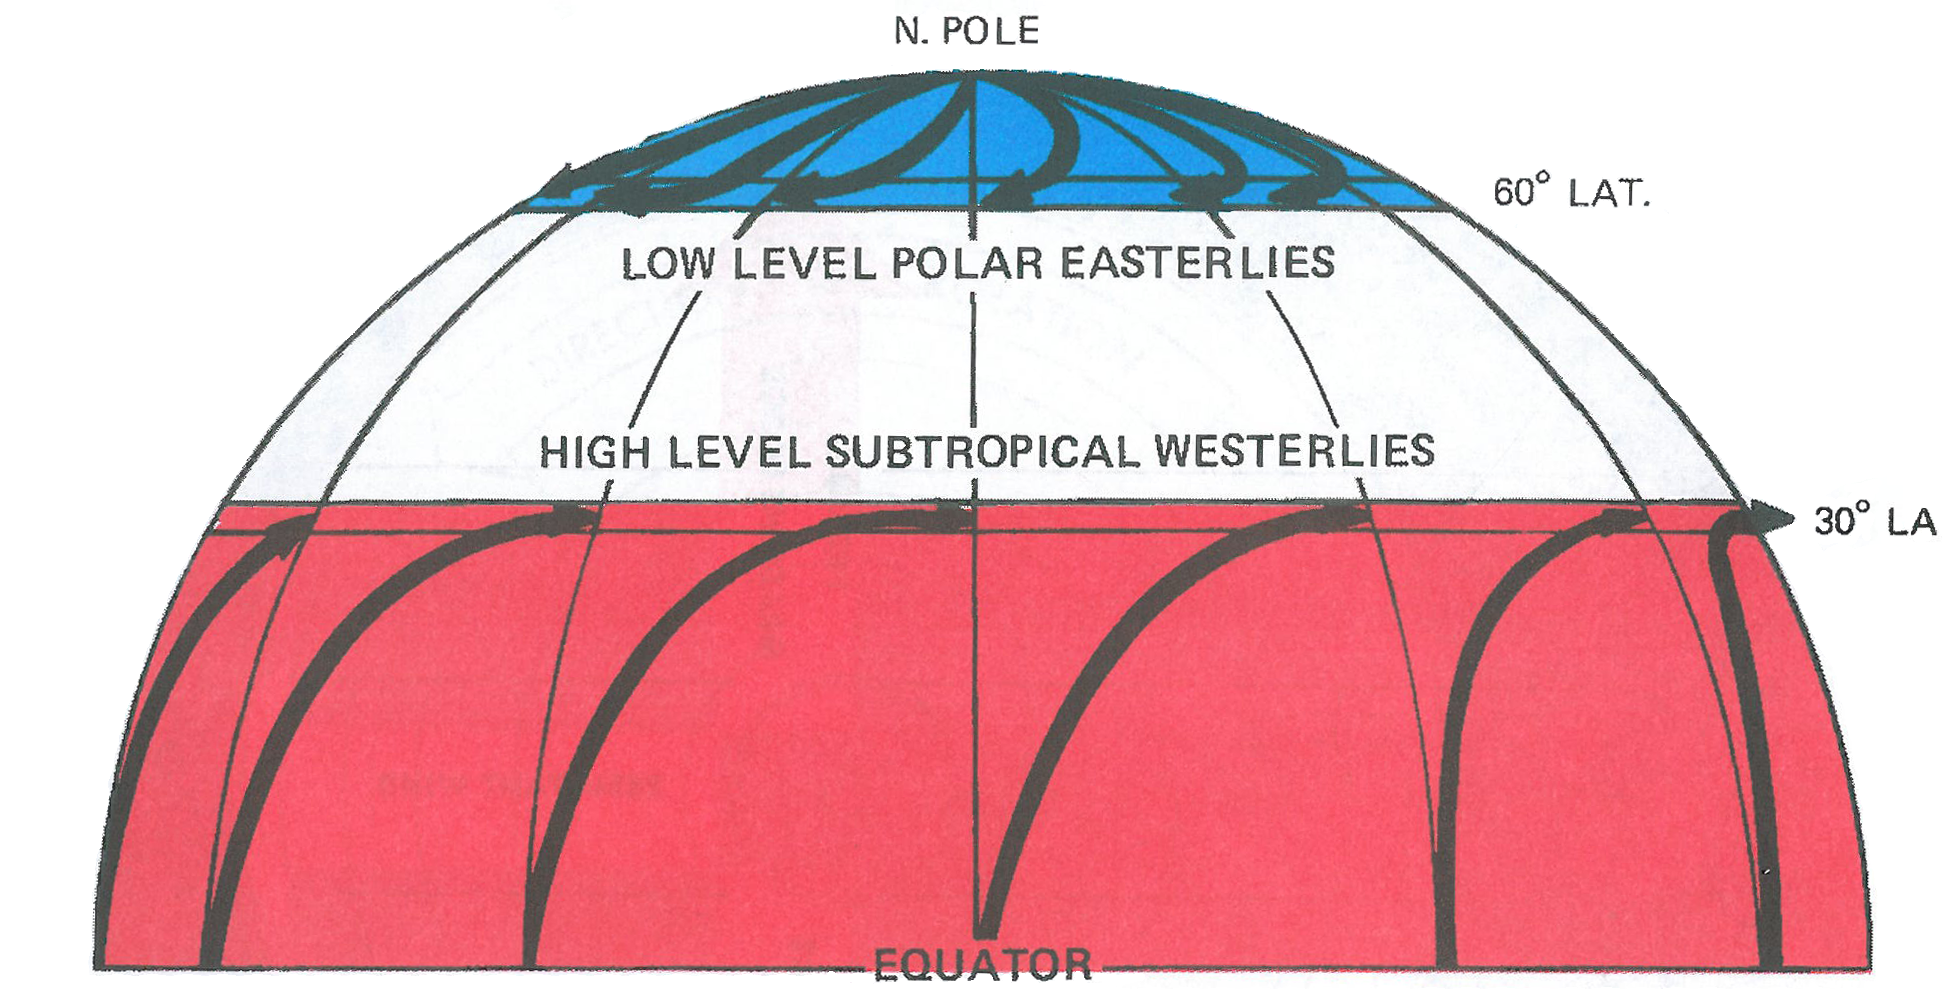 Figure 3.  In the Northern Hemisphere, Coriolis force turns high level southerly winds to westerlies at about 30° latitude, temporarily halting further northerly progress.